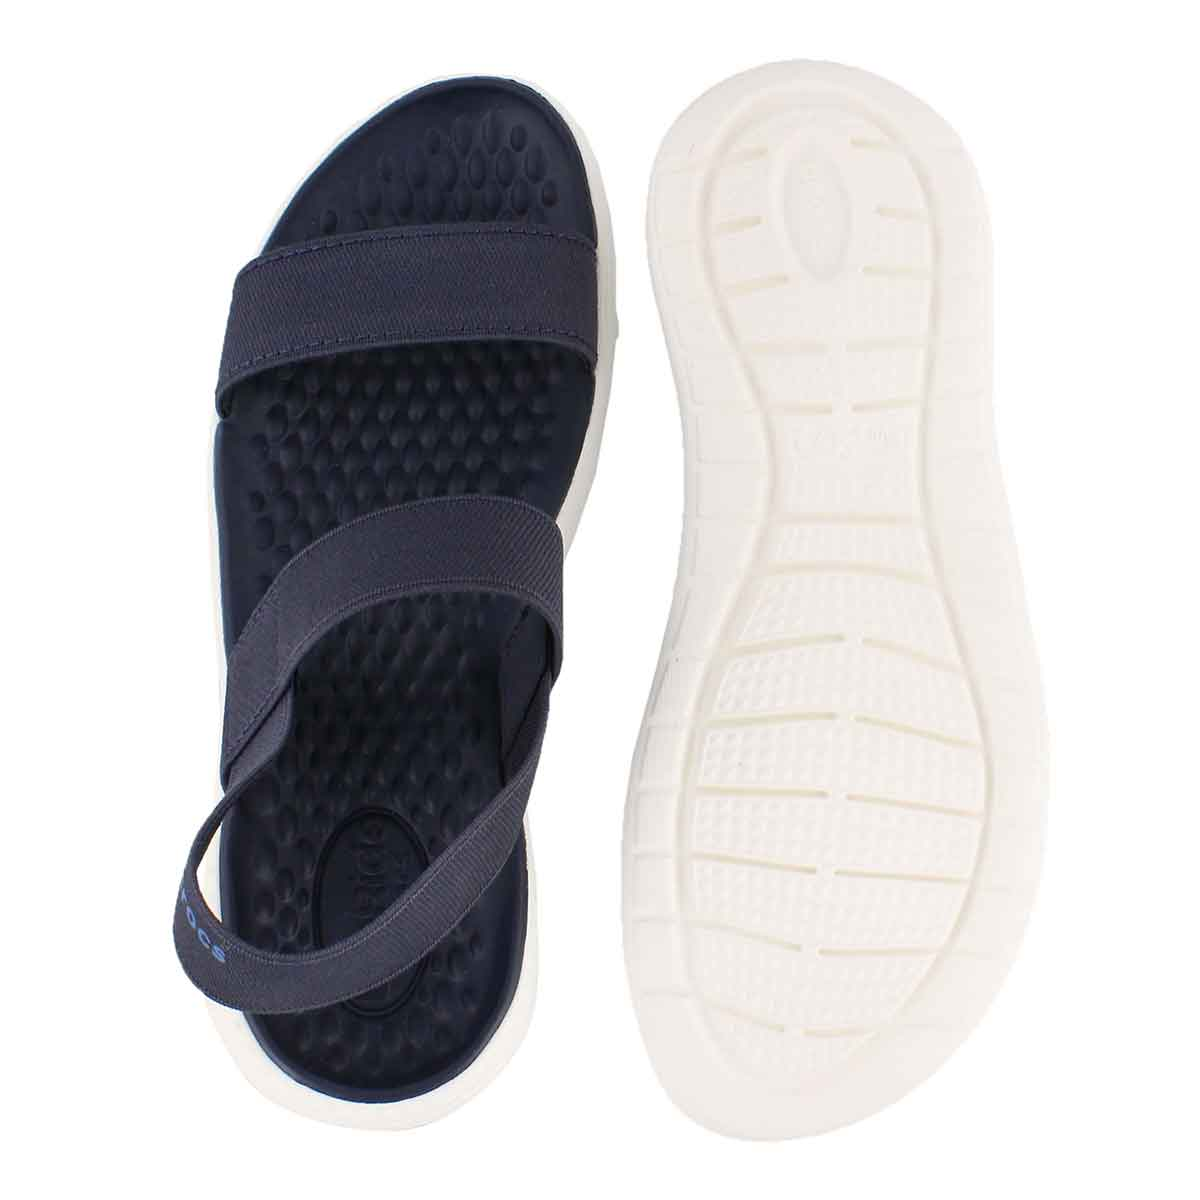 Lds LiteRide nvy/wht casual sandal